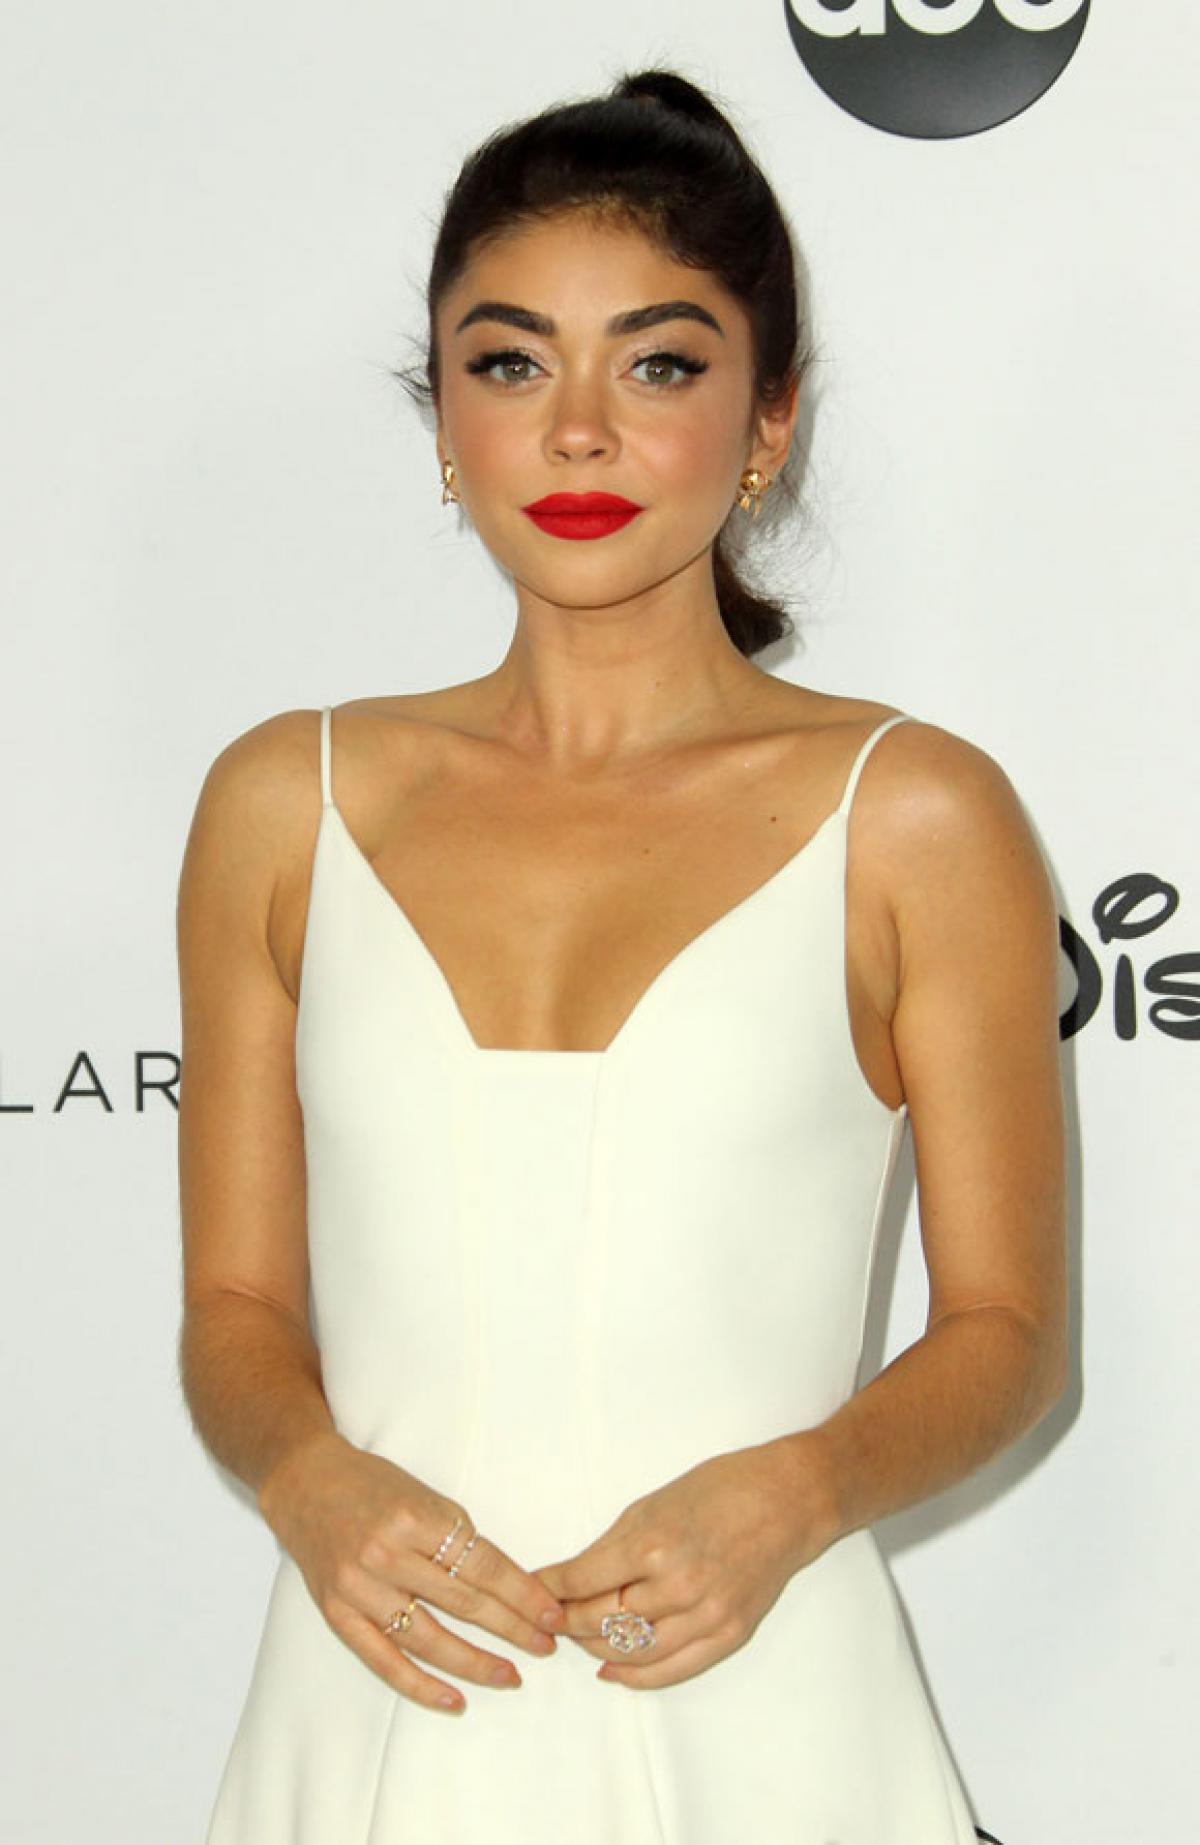 Sarah Hyland Would 'Write Letters' In Her Head To Loved Ones While Having Thoughts Of Suicide